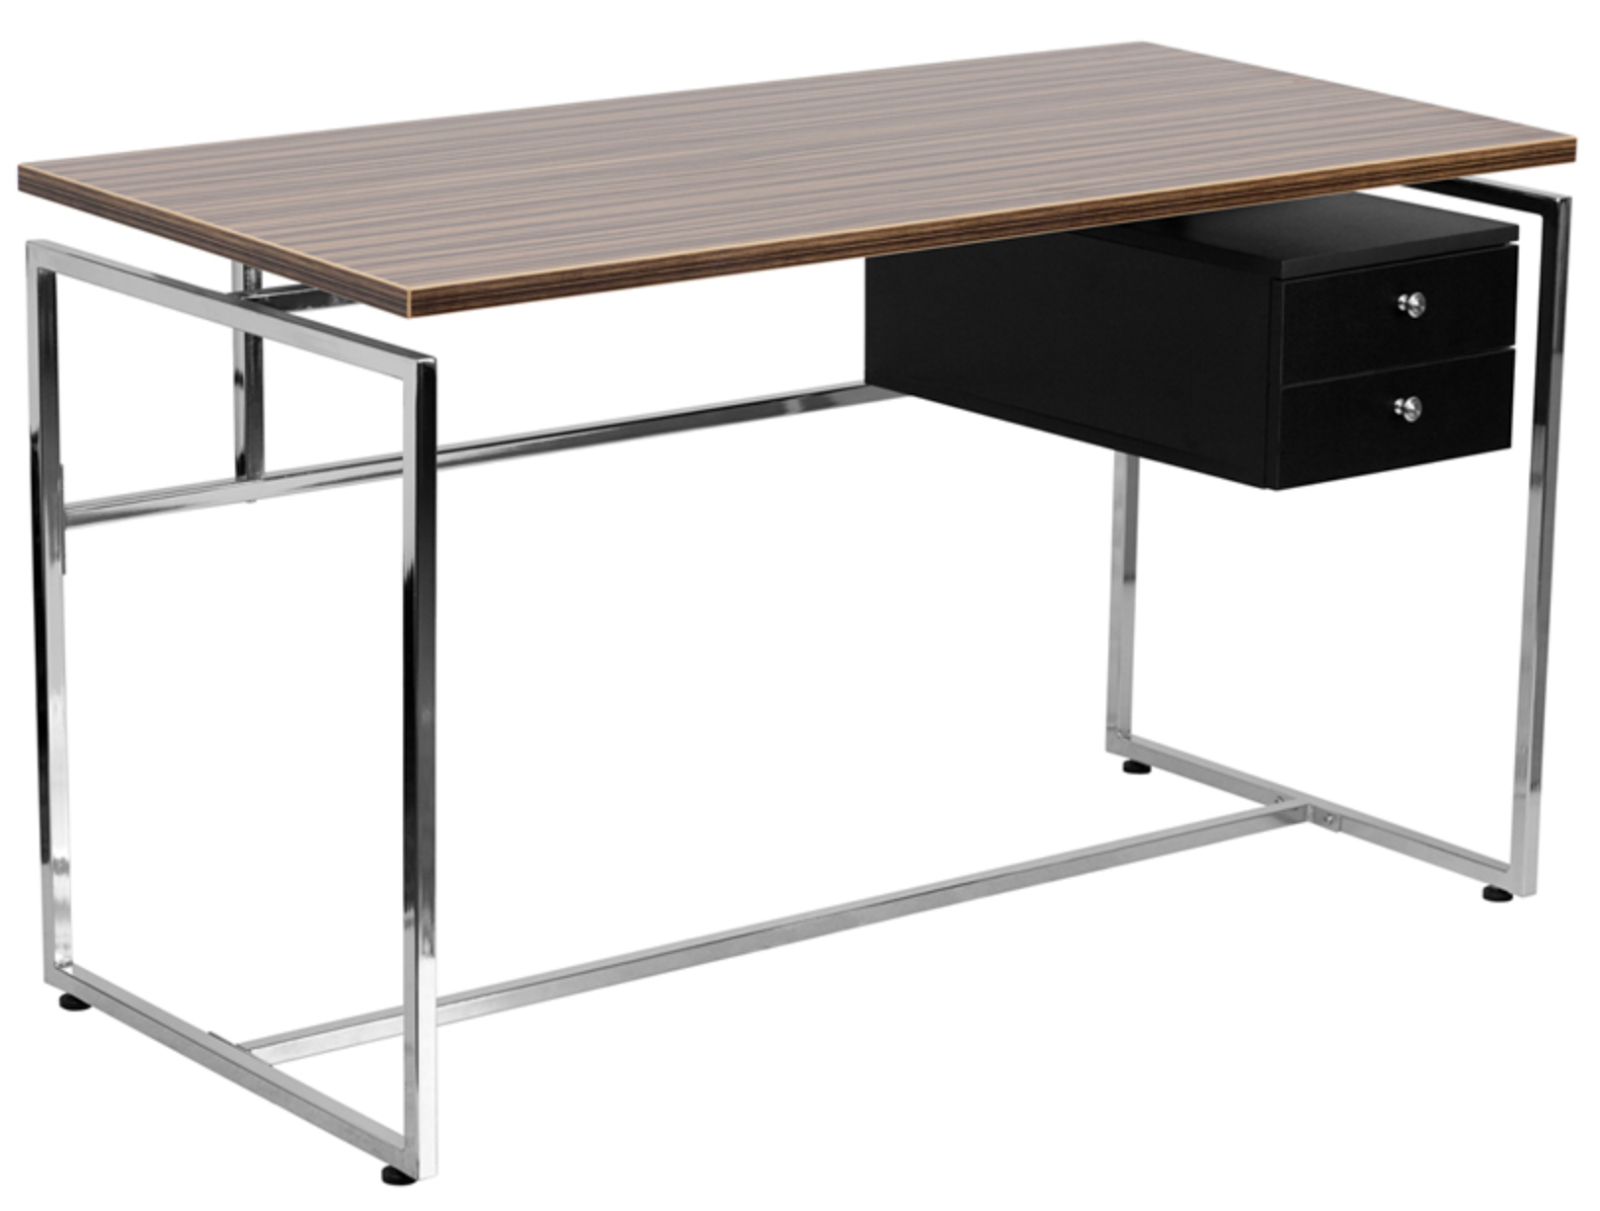 Office anything furniture blog office desk showcase for Affordable contemporary office furniture